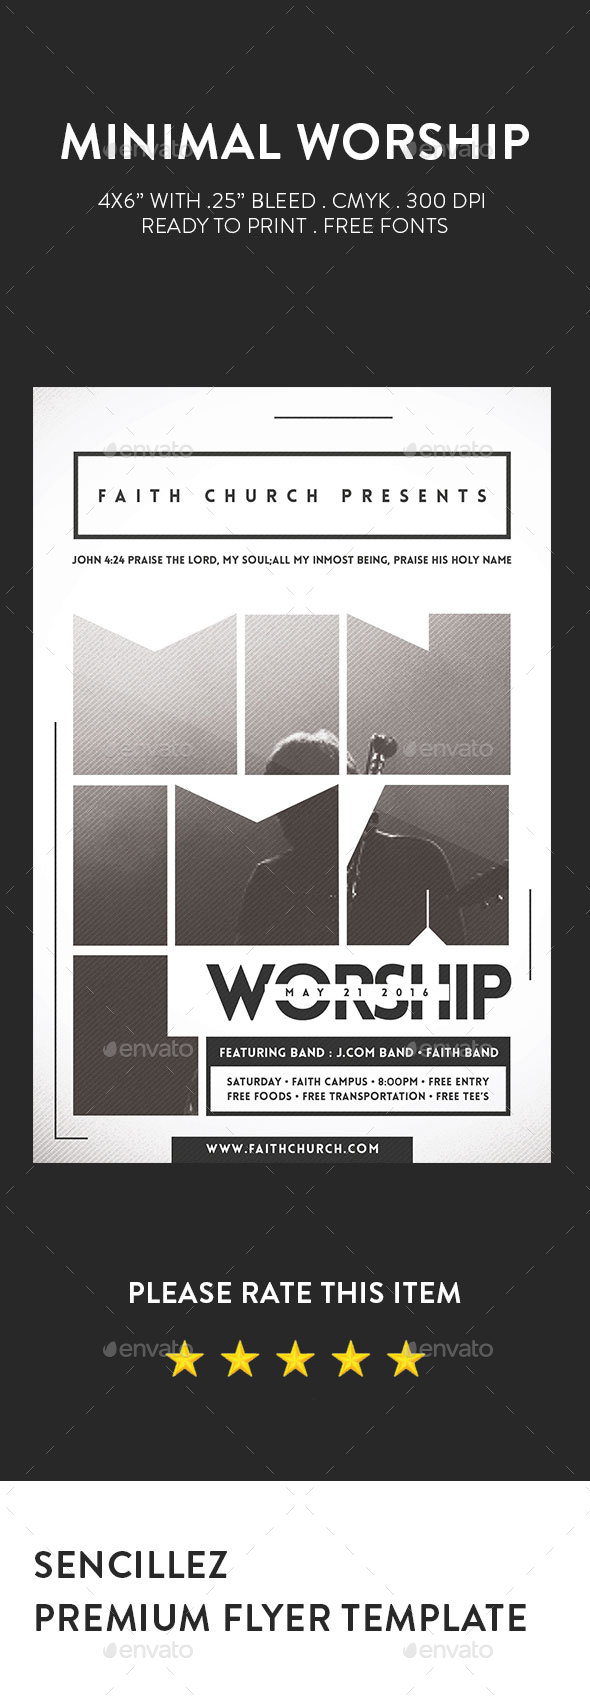 Minimal Worship Flyer - Church Flyers